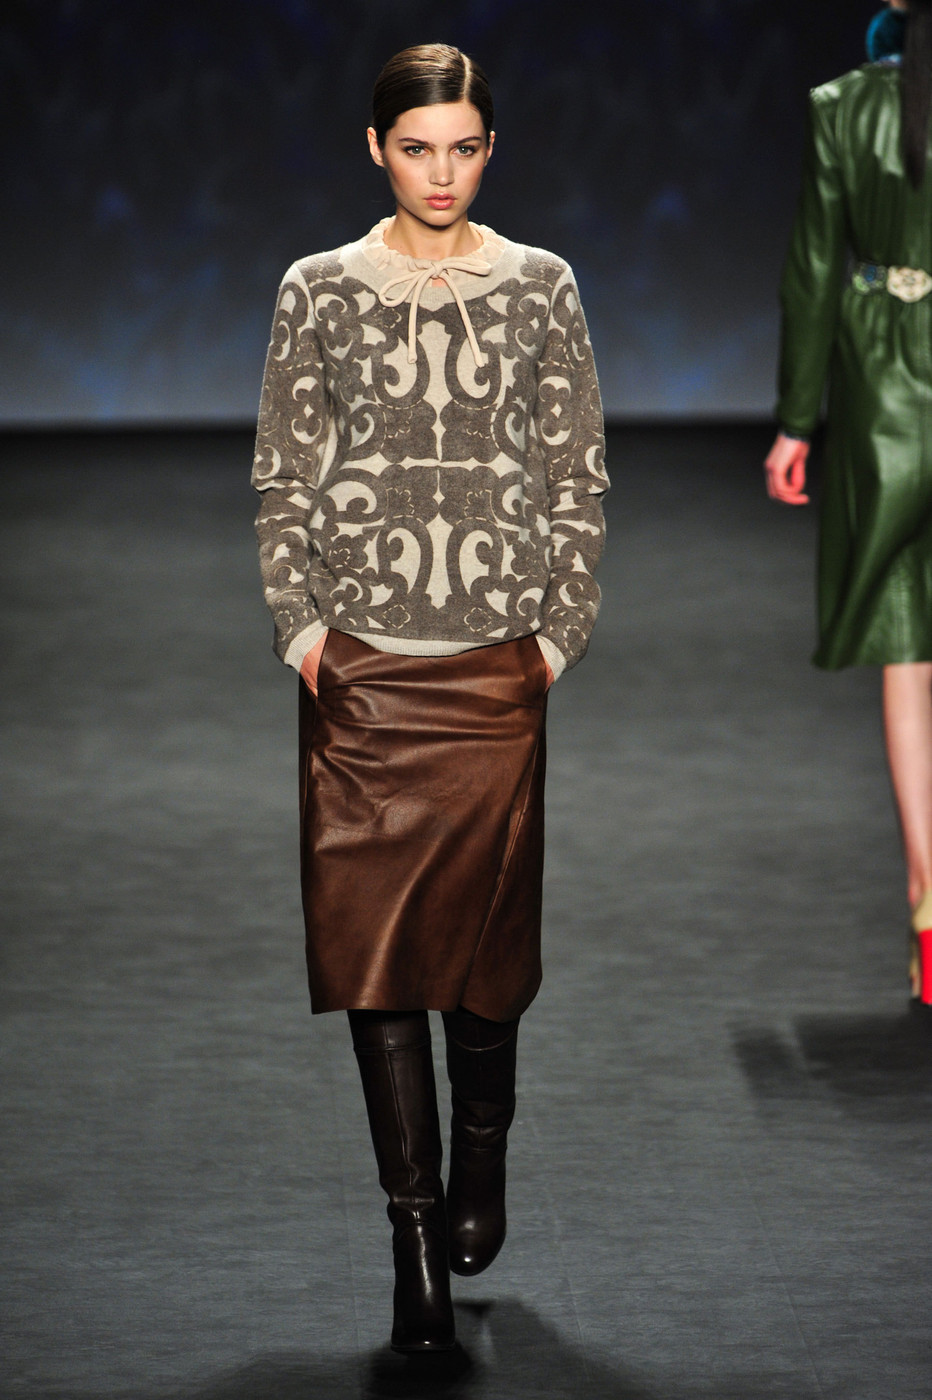 Vivienne Tam Fall 2014 Runway Pictures - Livingly